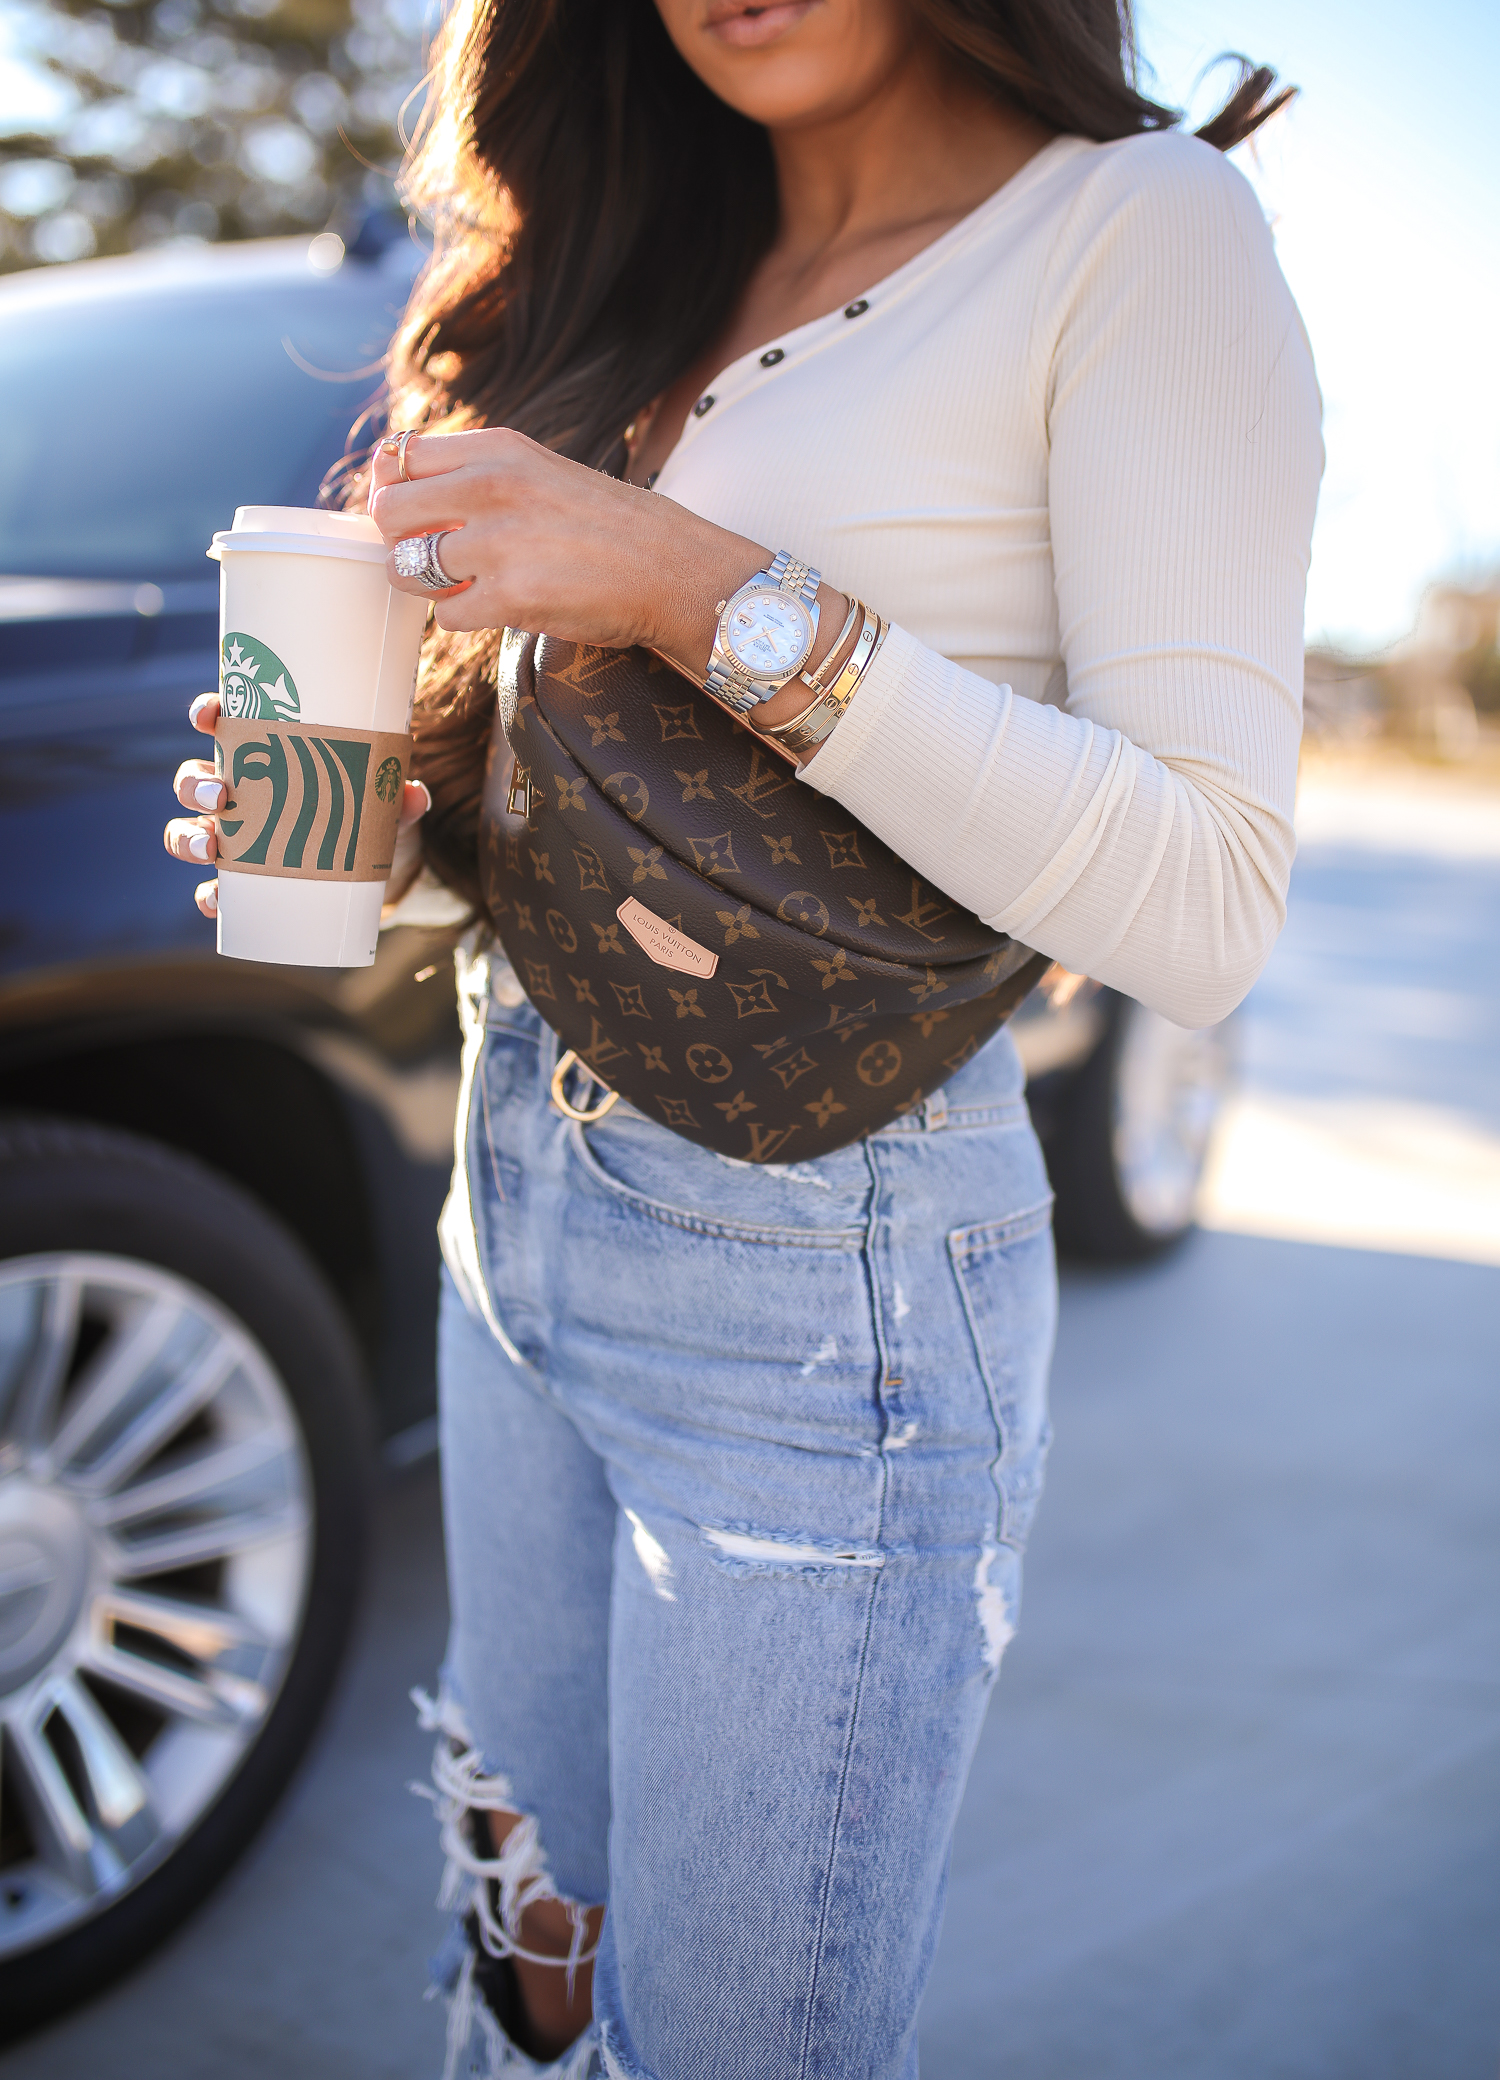 AGOLDE 90s fit high rise jeans review, Louis Vuitton bum bum fanny pack bag, louis vuitton bum bum fanny review pinterest outfit idea, emily gemma, popular fashion bloggers US instagrammers-6 | Agolde Jeans and My Main #OOTD by popular Oklahoma fashion blog, The Sweetest Thing: image of a woman wearing Oliver Top Privacy Please brand: Privacy Please, 90s High Rise Loose Fit AGOLDE brand: AGOLDE, GOLDEN GOOSE Superstar Low-Top Sneakers, Nordstrom 55mm Cat Eye Sunglasses GUCCI, Louis Vuitton Bum Bum fanny pack, Nordstrom Lip Cheat Lip Liner CHARLOTTE TILBURY, Nordstrom Hot Lips Lipstick CHARLOTTE TILBURY, and Nordstrom Gloss Luxe Moisturizing Lipgloss TOM FORD.